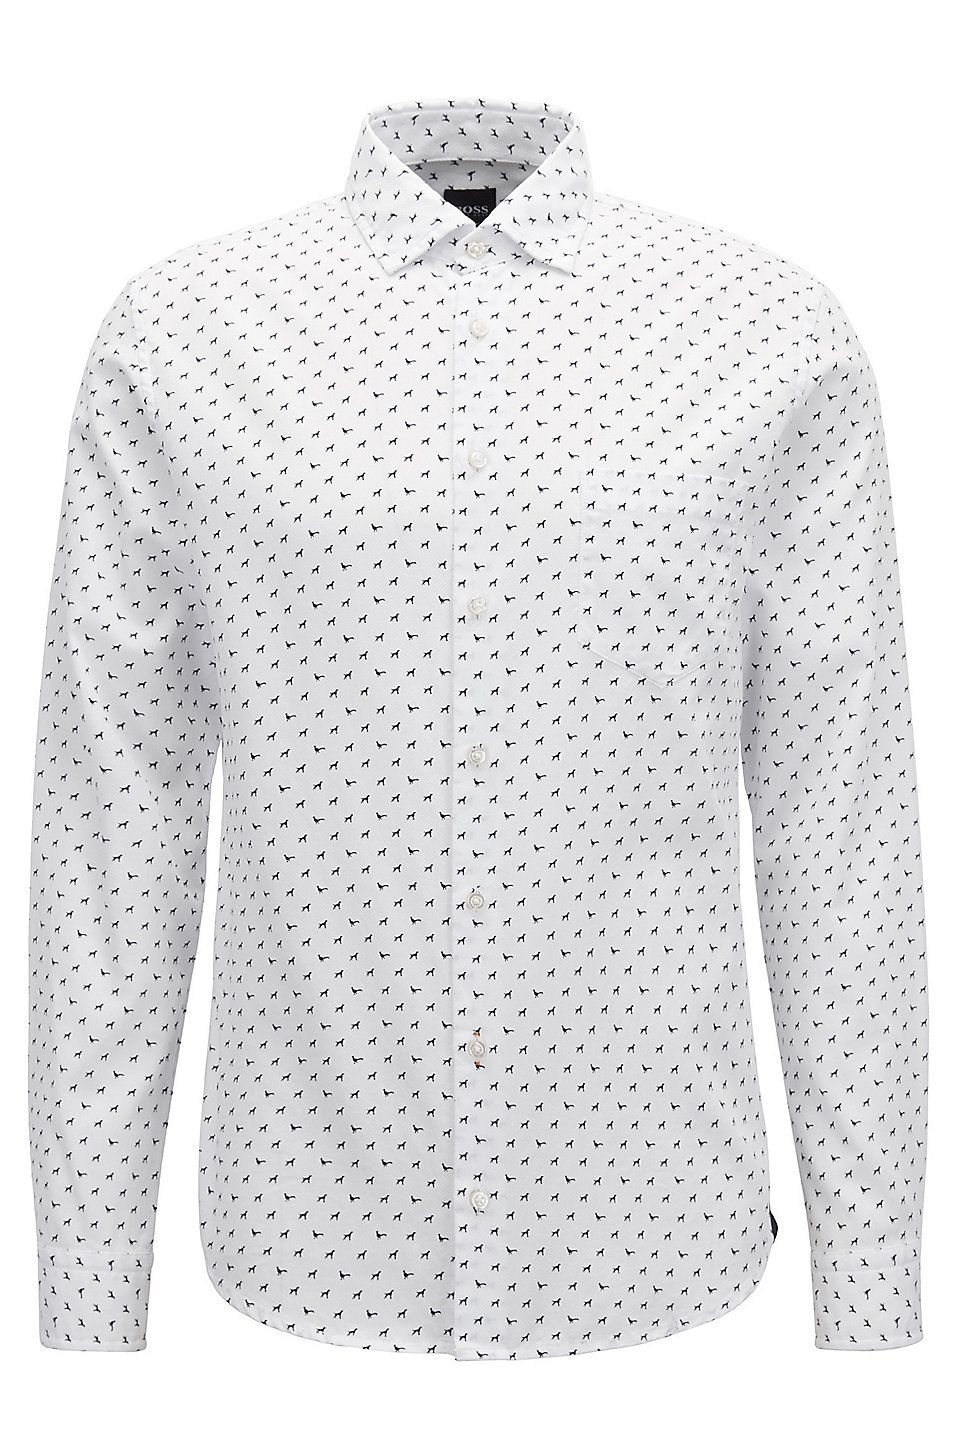 71d5e71a HUGO BOSS Slim-fit shirt in cotton with dog motif - White Casual Shirts  from BOSS for Men in the official HUGO BOSS Online Store free shipping